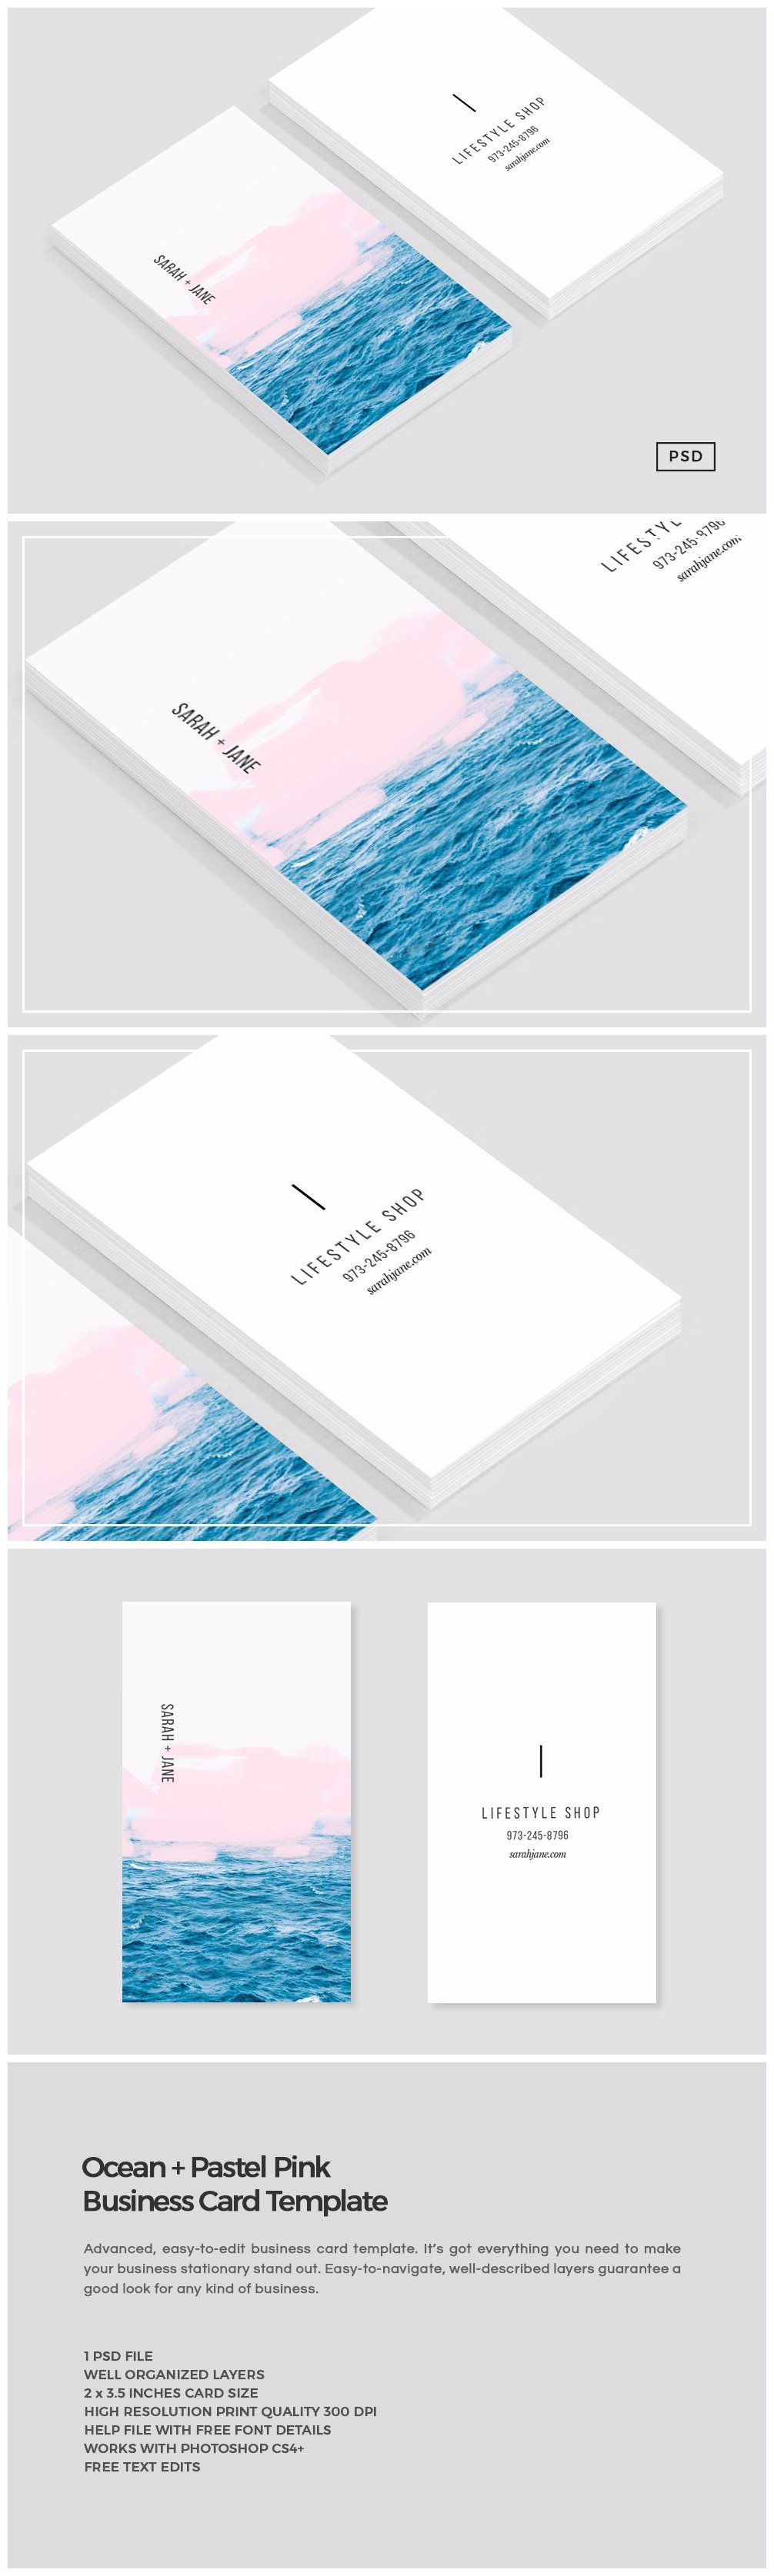 Ocean pink business card template business card templates ocean pink business card template business card templates creative market reheart Gallery